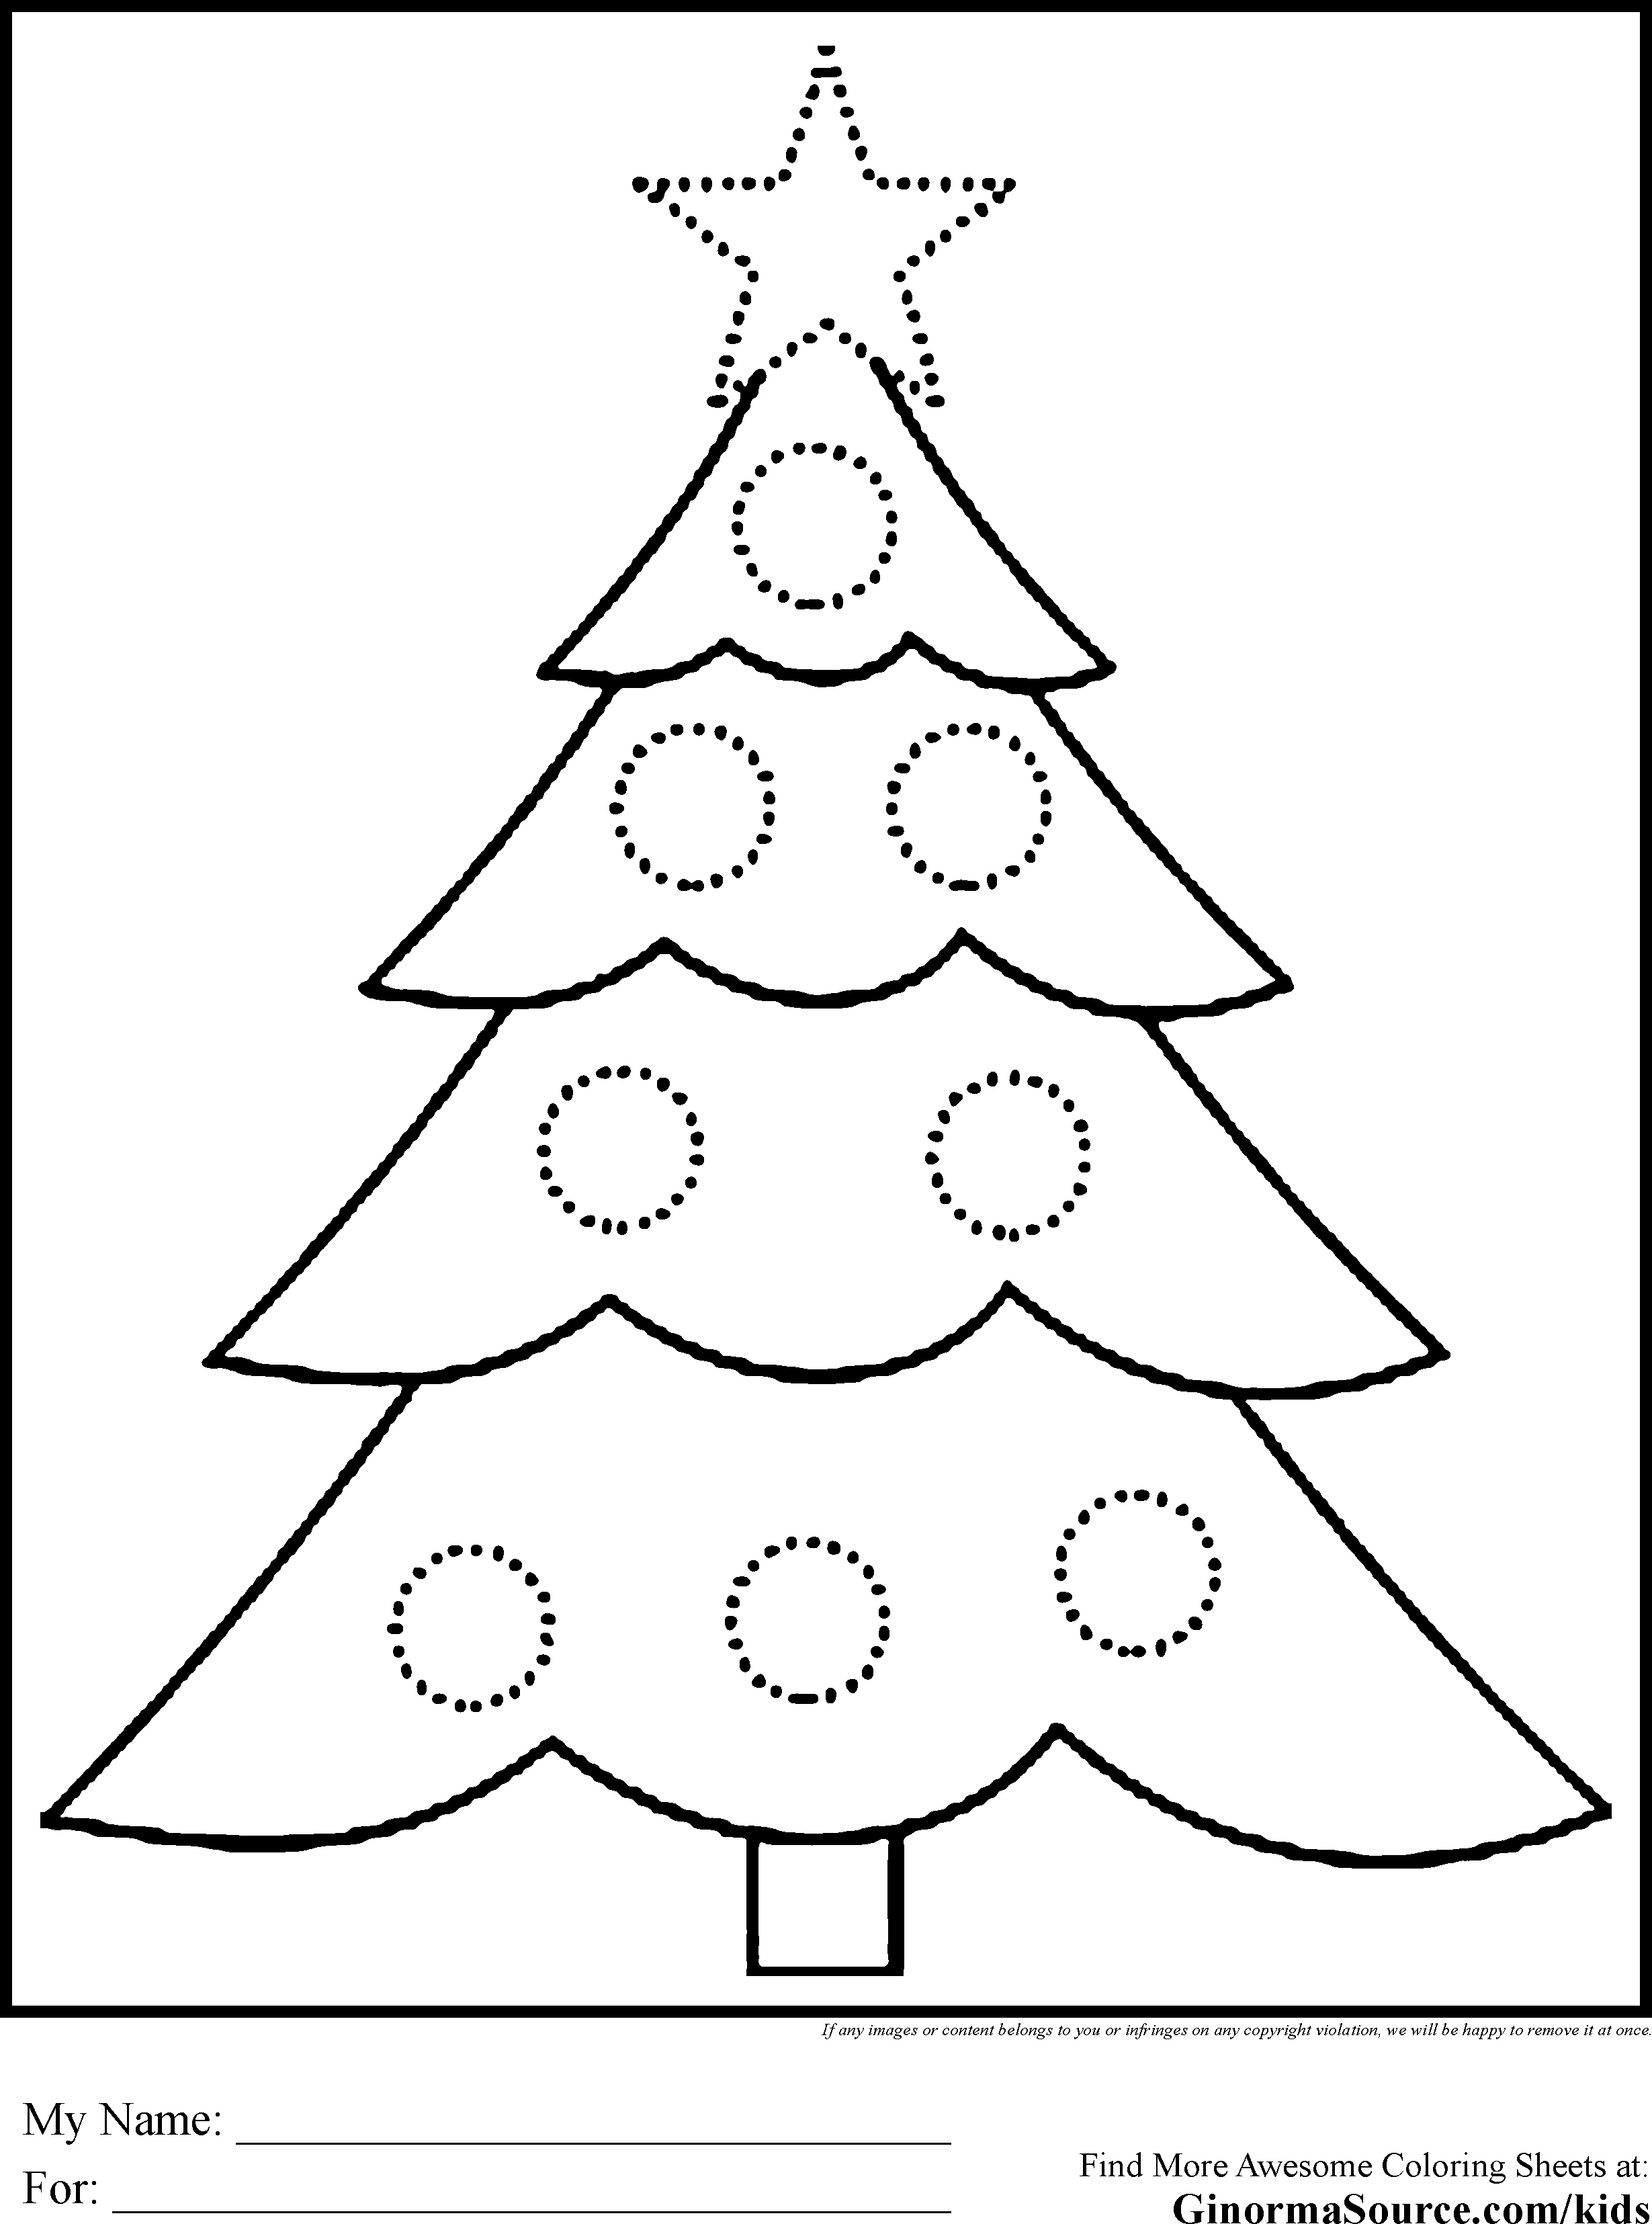 Christmas Tree Coloring Page - frequence3